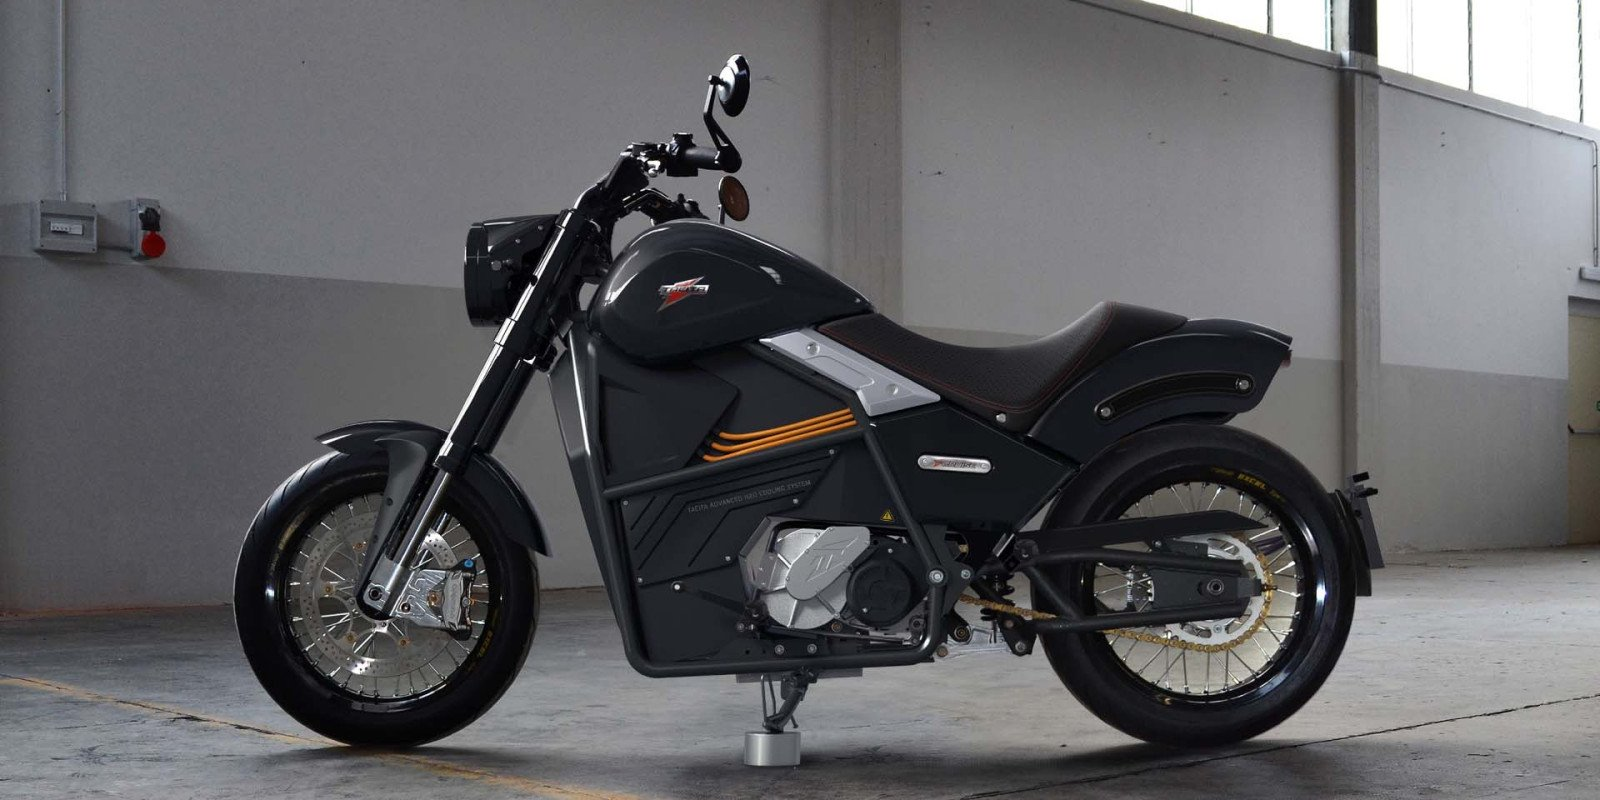 Tacita unveils 2020 cruiser electric motorcycle with manual gearbox for EU/US